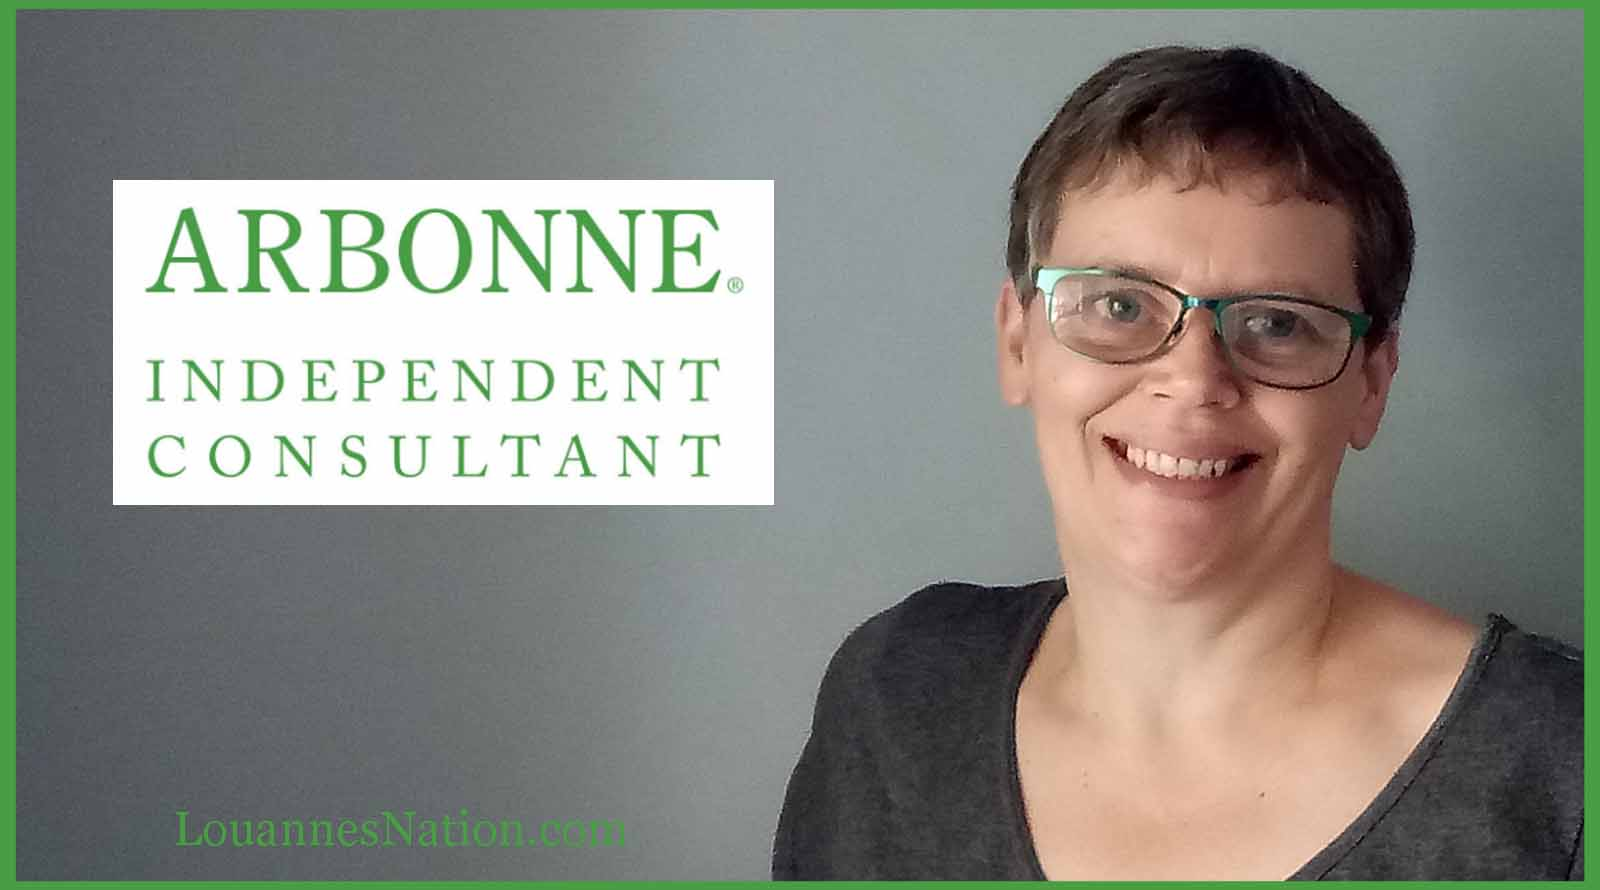 Louannes Nation Arbonne Independent Consultant